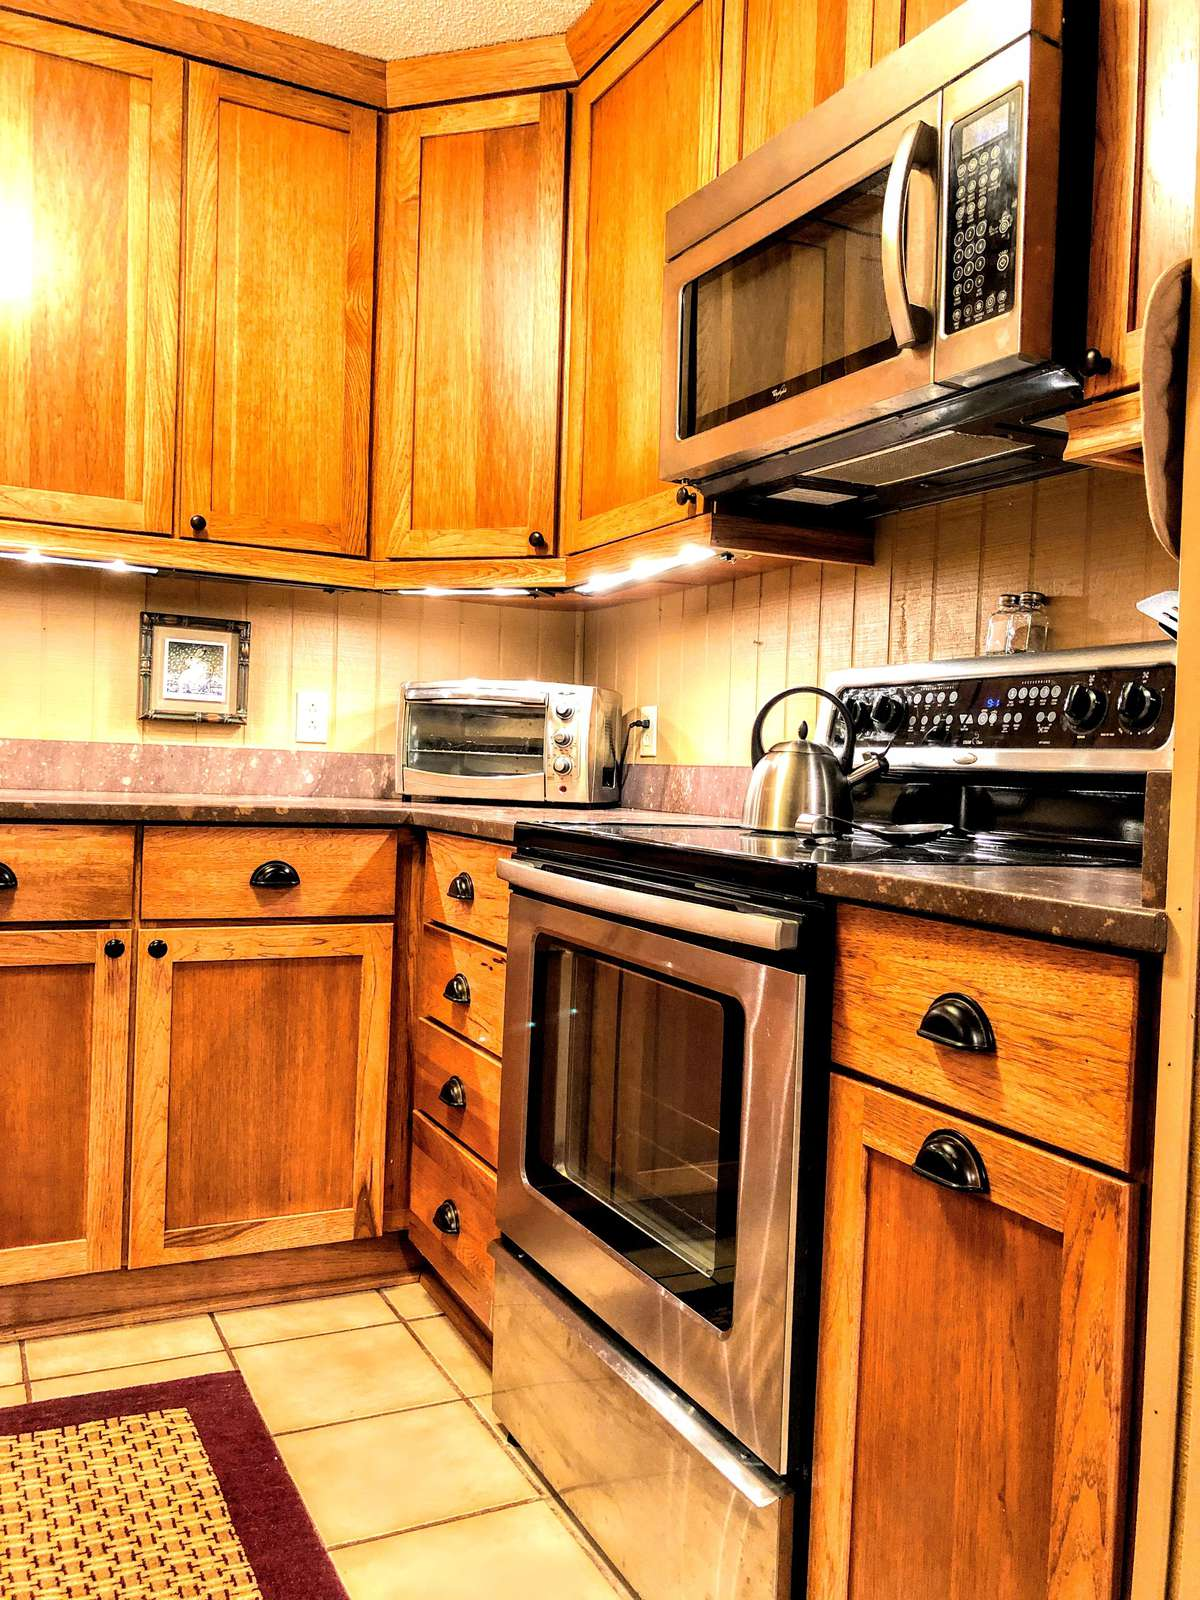 Fully-equipped kitchen (pots, pans, utensils, spices, cookware, etc.) with oak cabinets, solid-surface counter-tops, and stainless steel appliances!